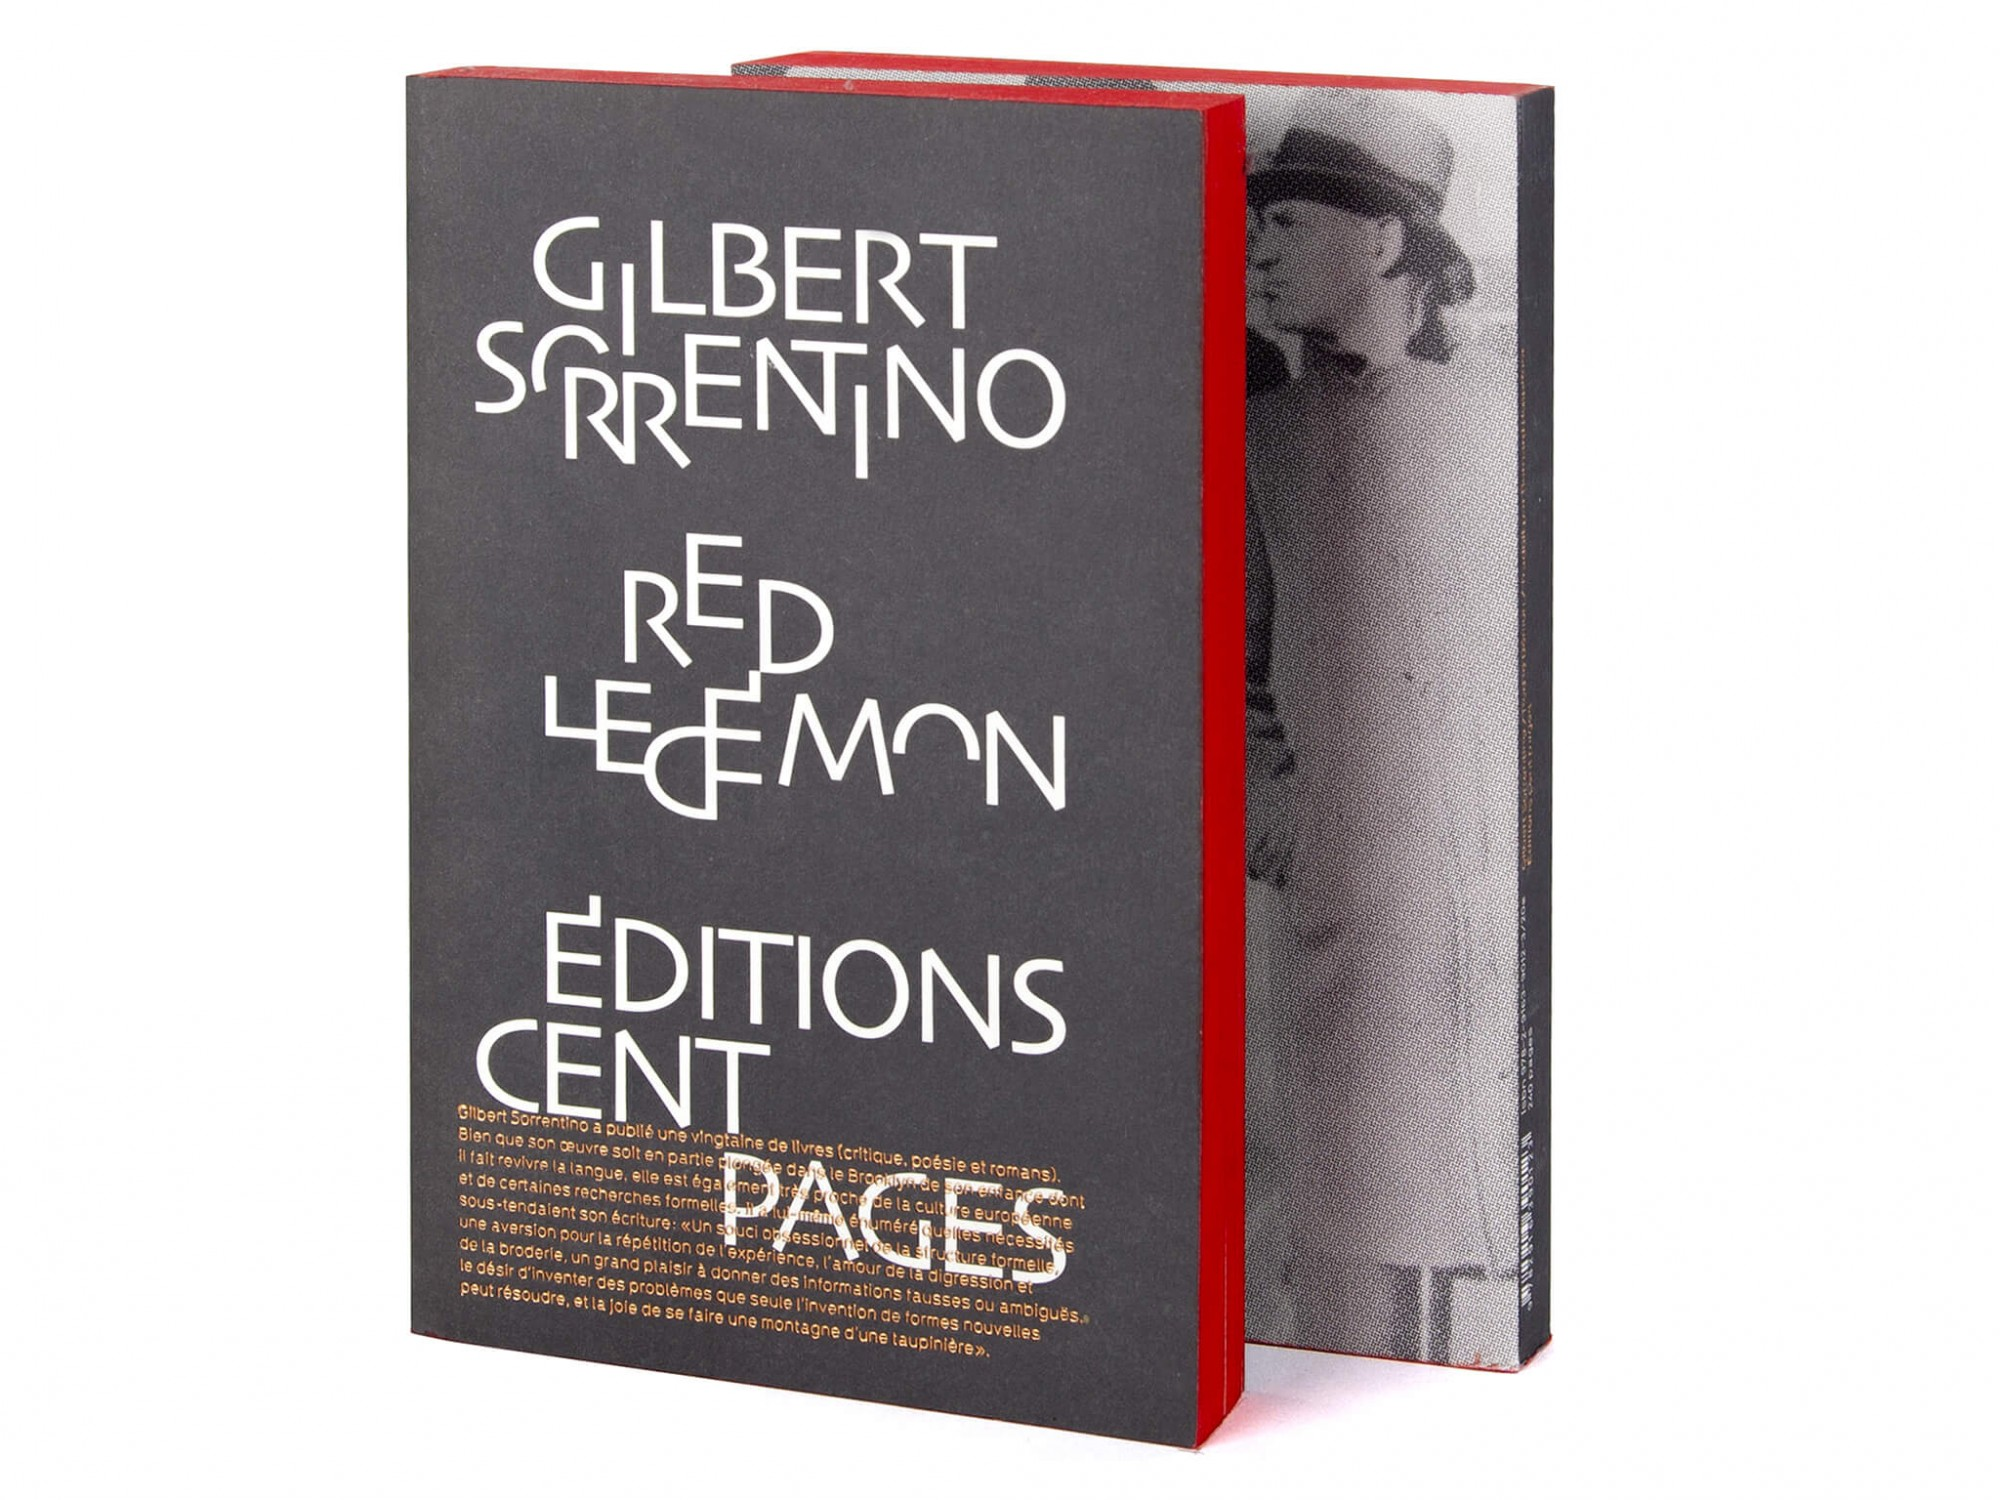 Gilbert Sorrentino - Red le...